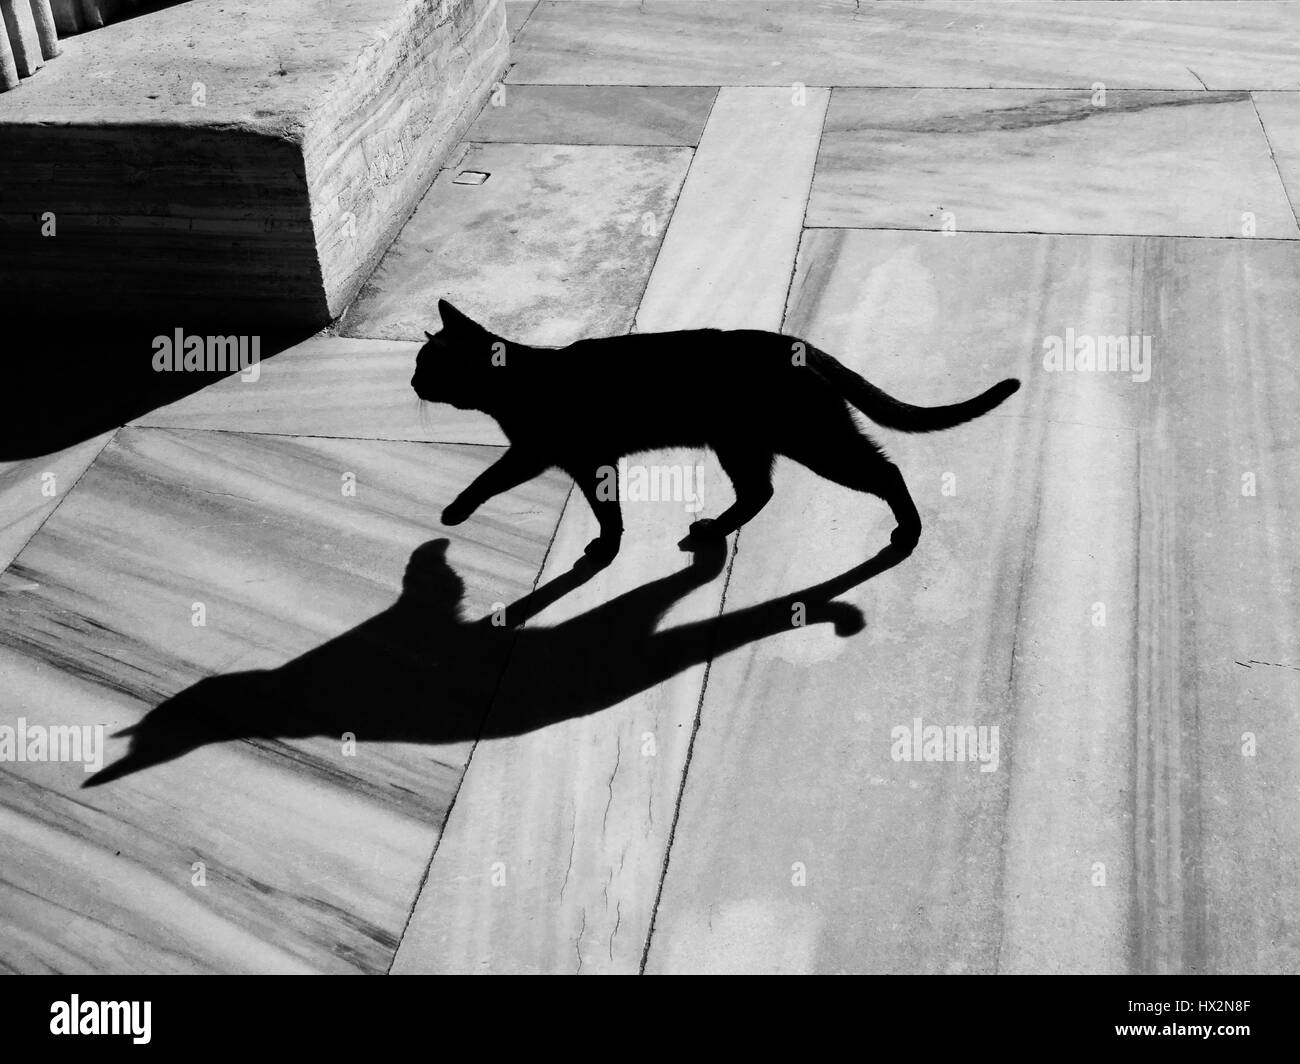 Image result for shadows on a sunny porch with cat